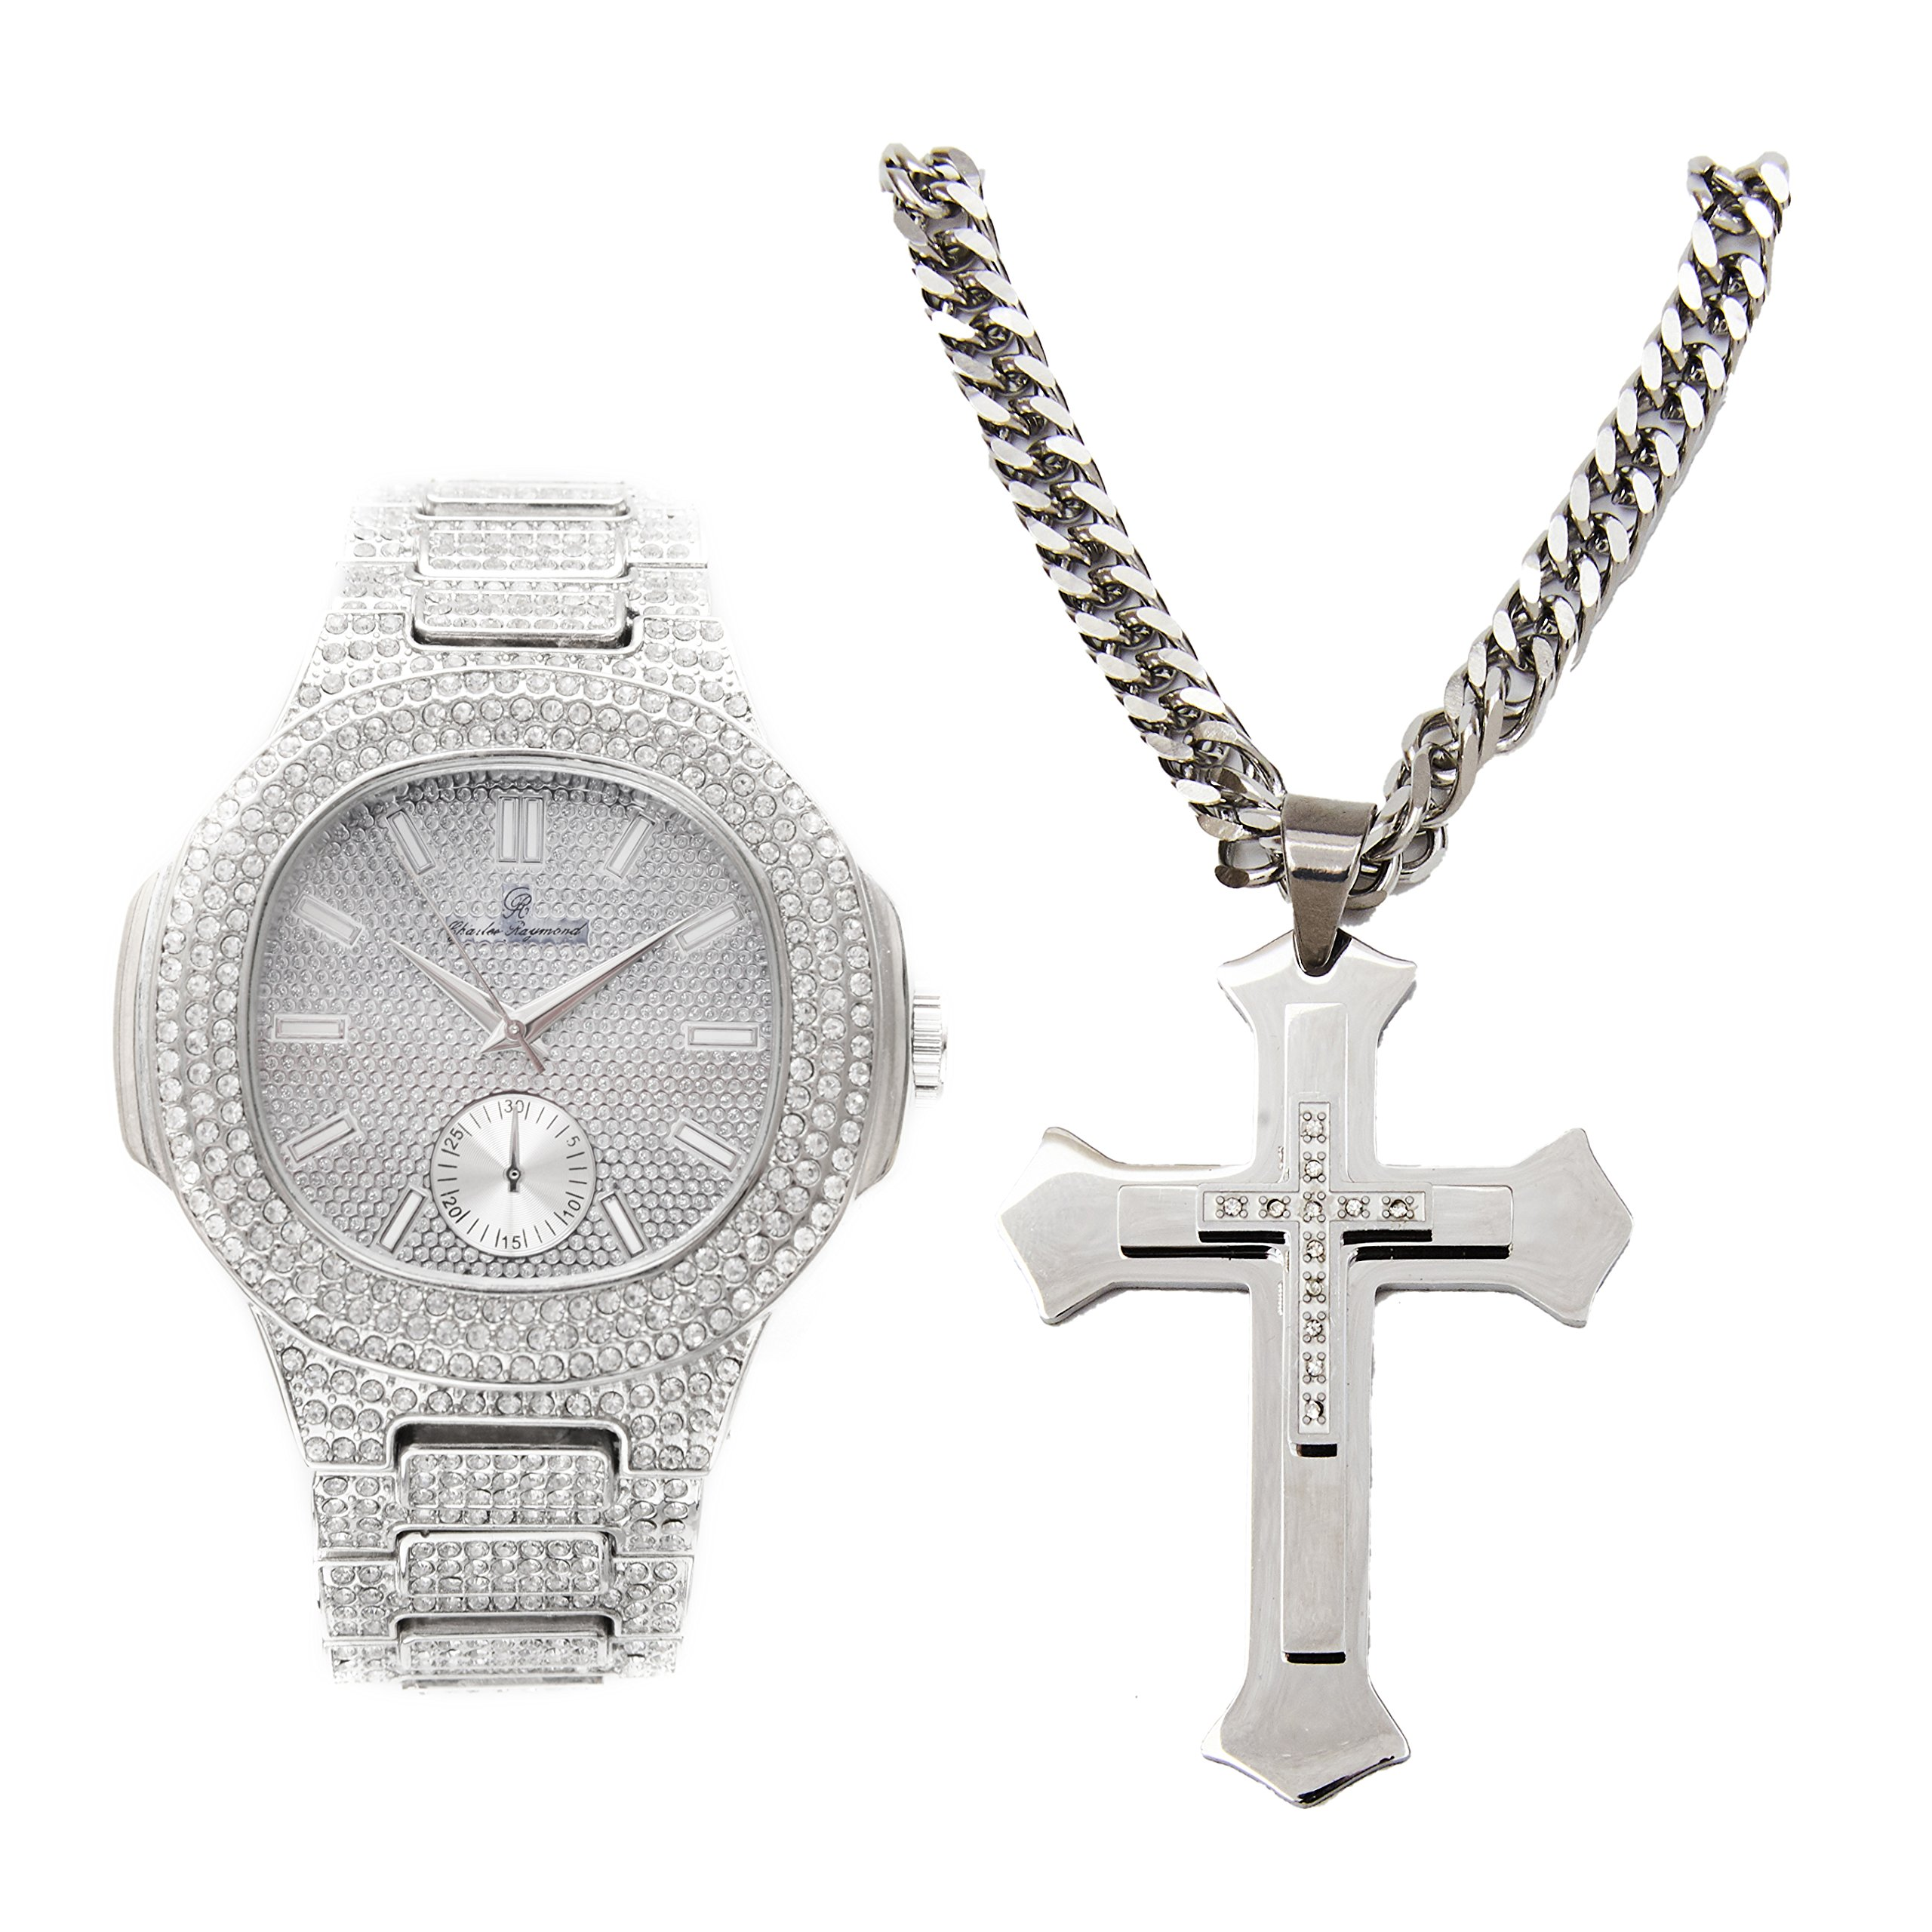 Bling-ed Out Mens Silver Oblong Case Rapper's Metal Hip Hop Watch with Matching Bling-ed Out Stainless Steel Silver Cross Necklace - 8475SLV- LR1020C Silver Cross Set